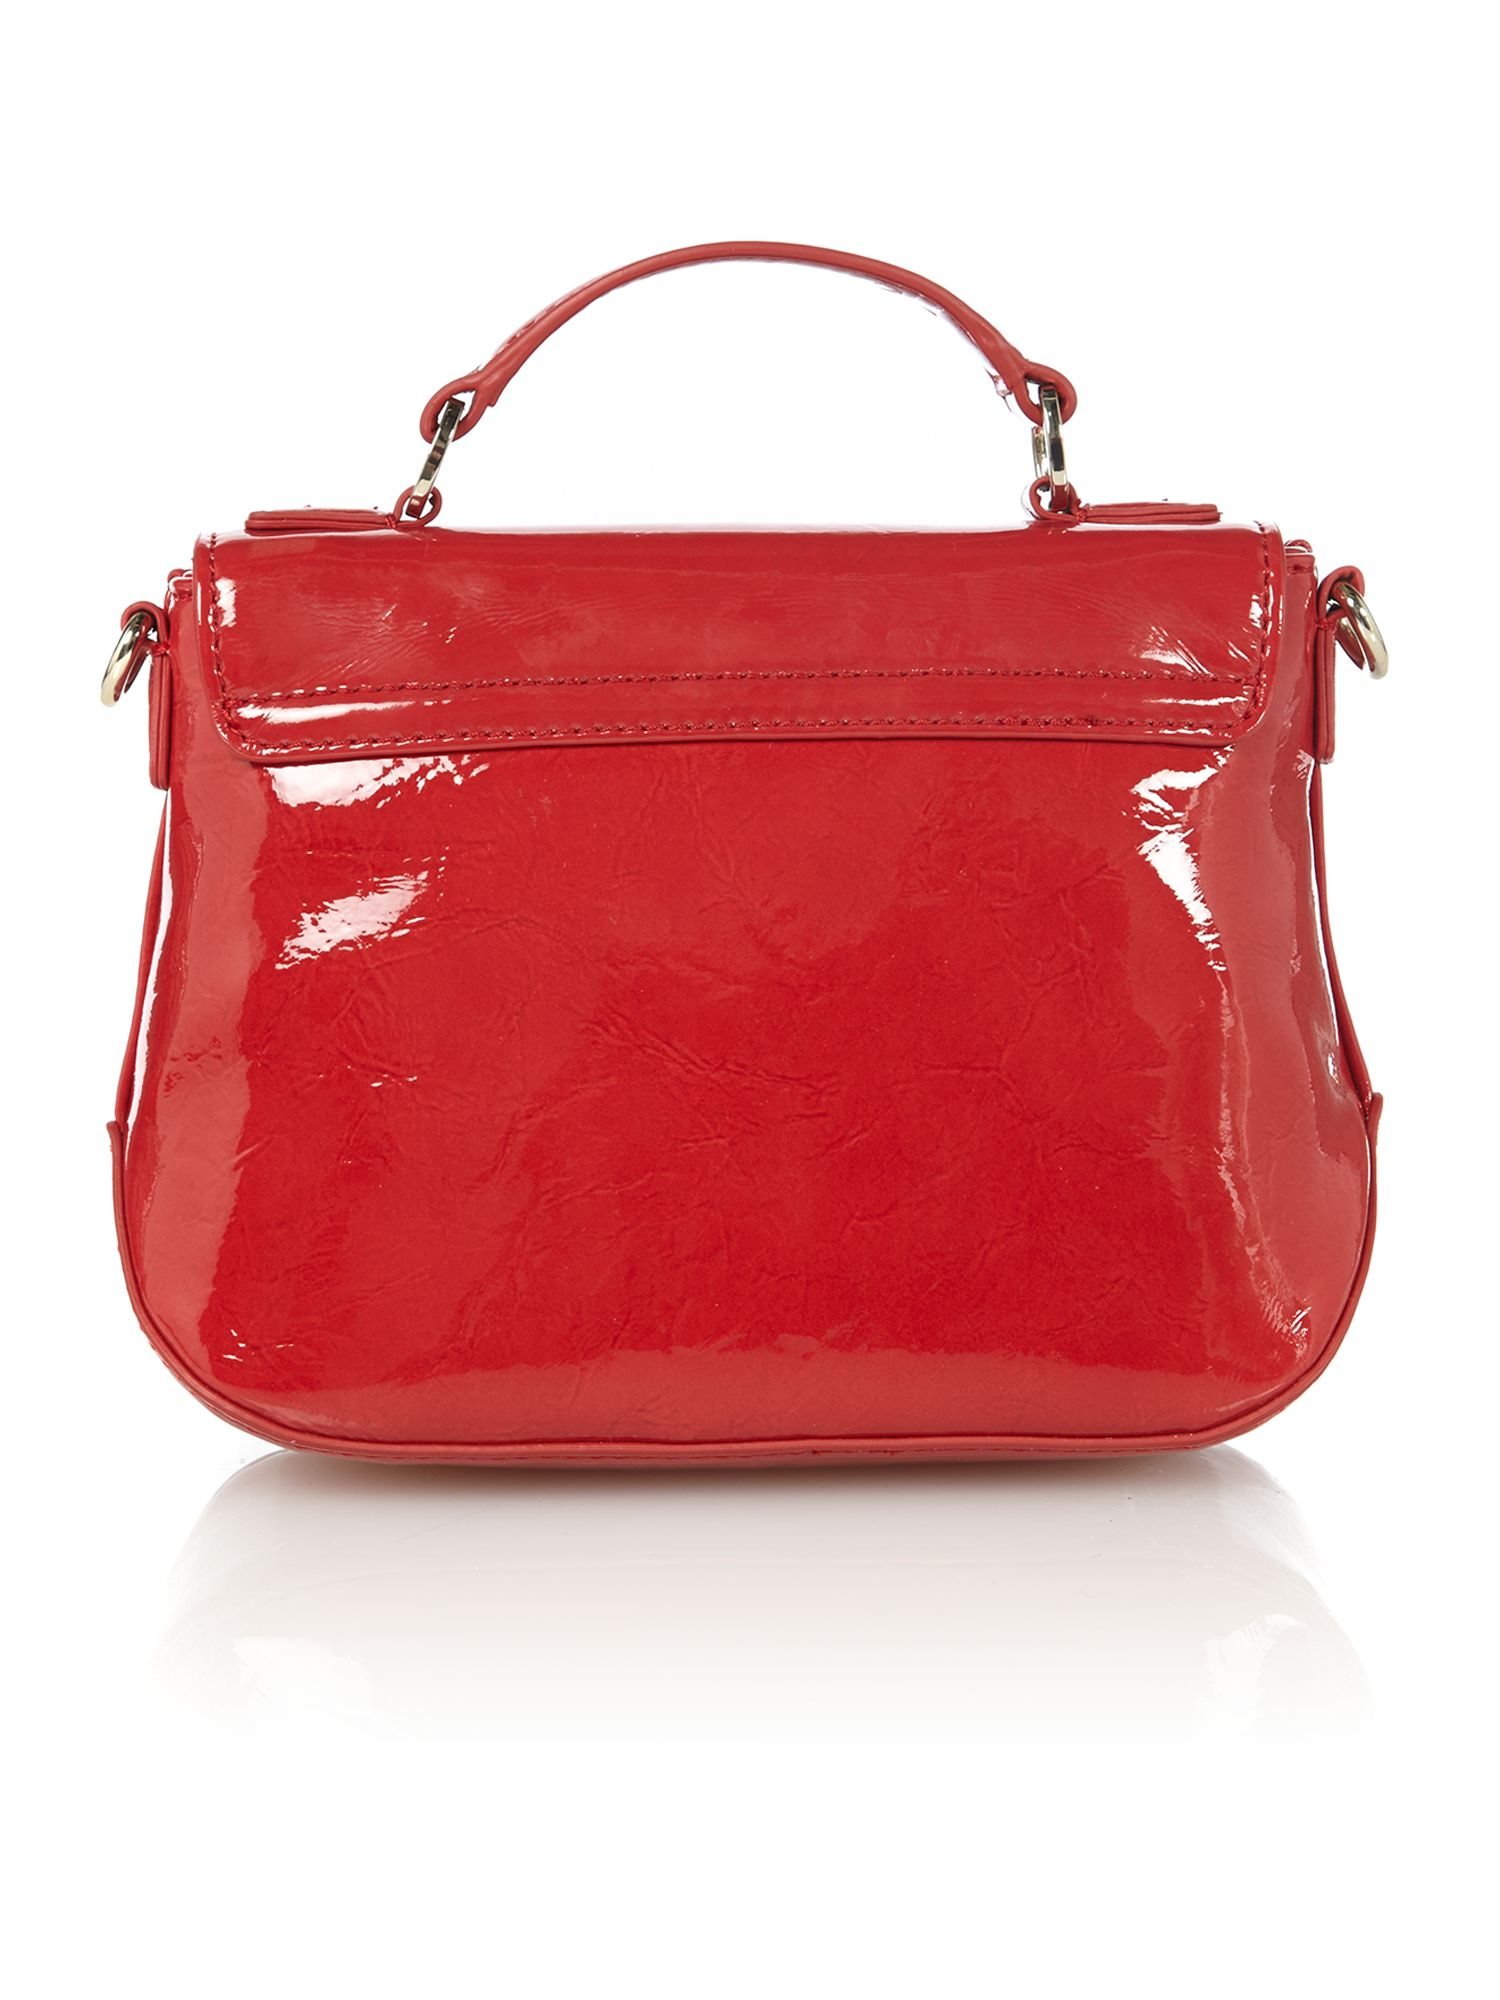 Patent logo red crossbody bag